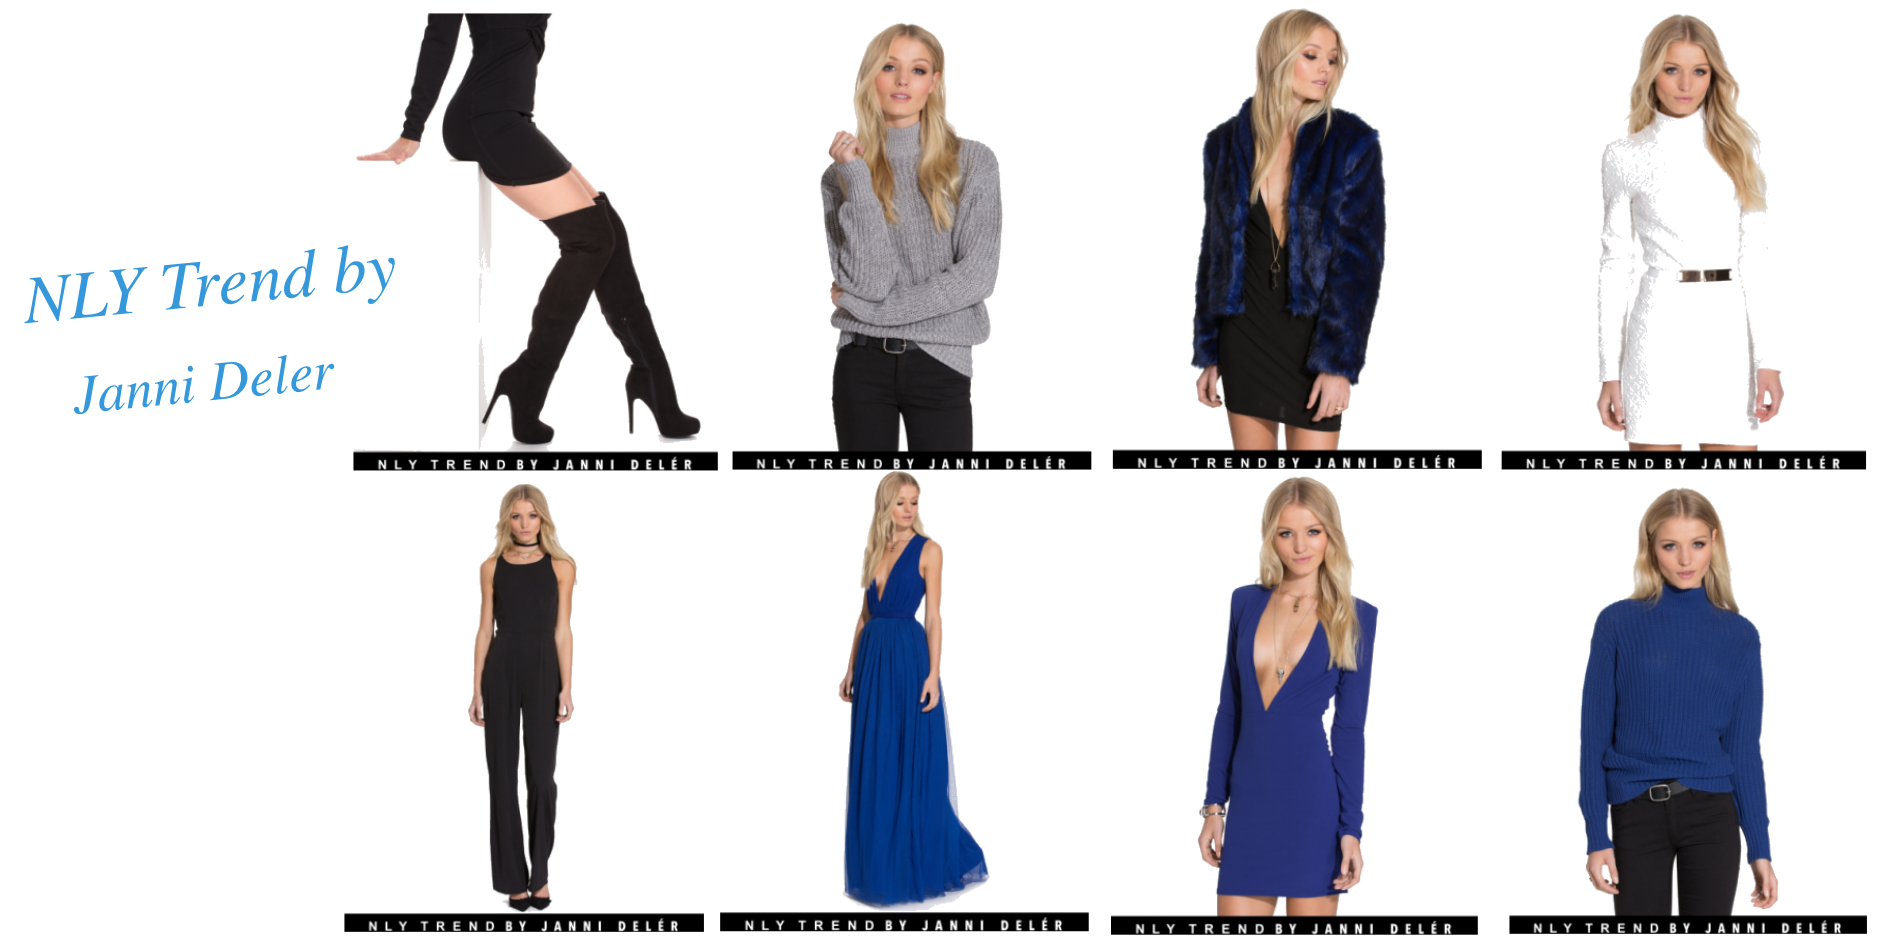 NLY trend by janni deler